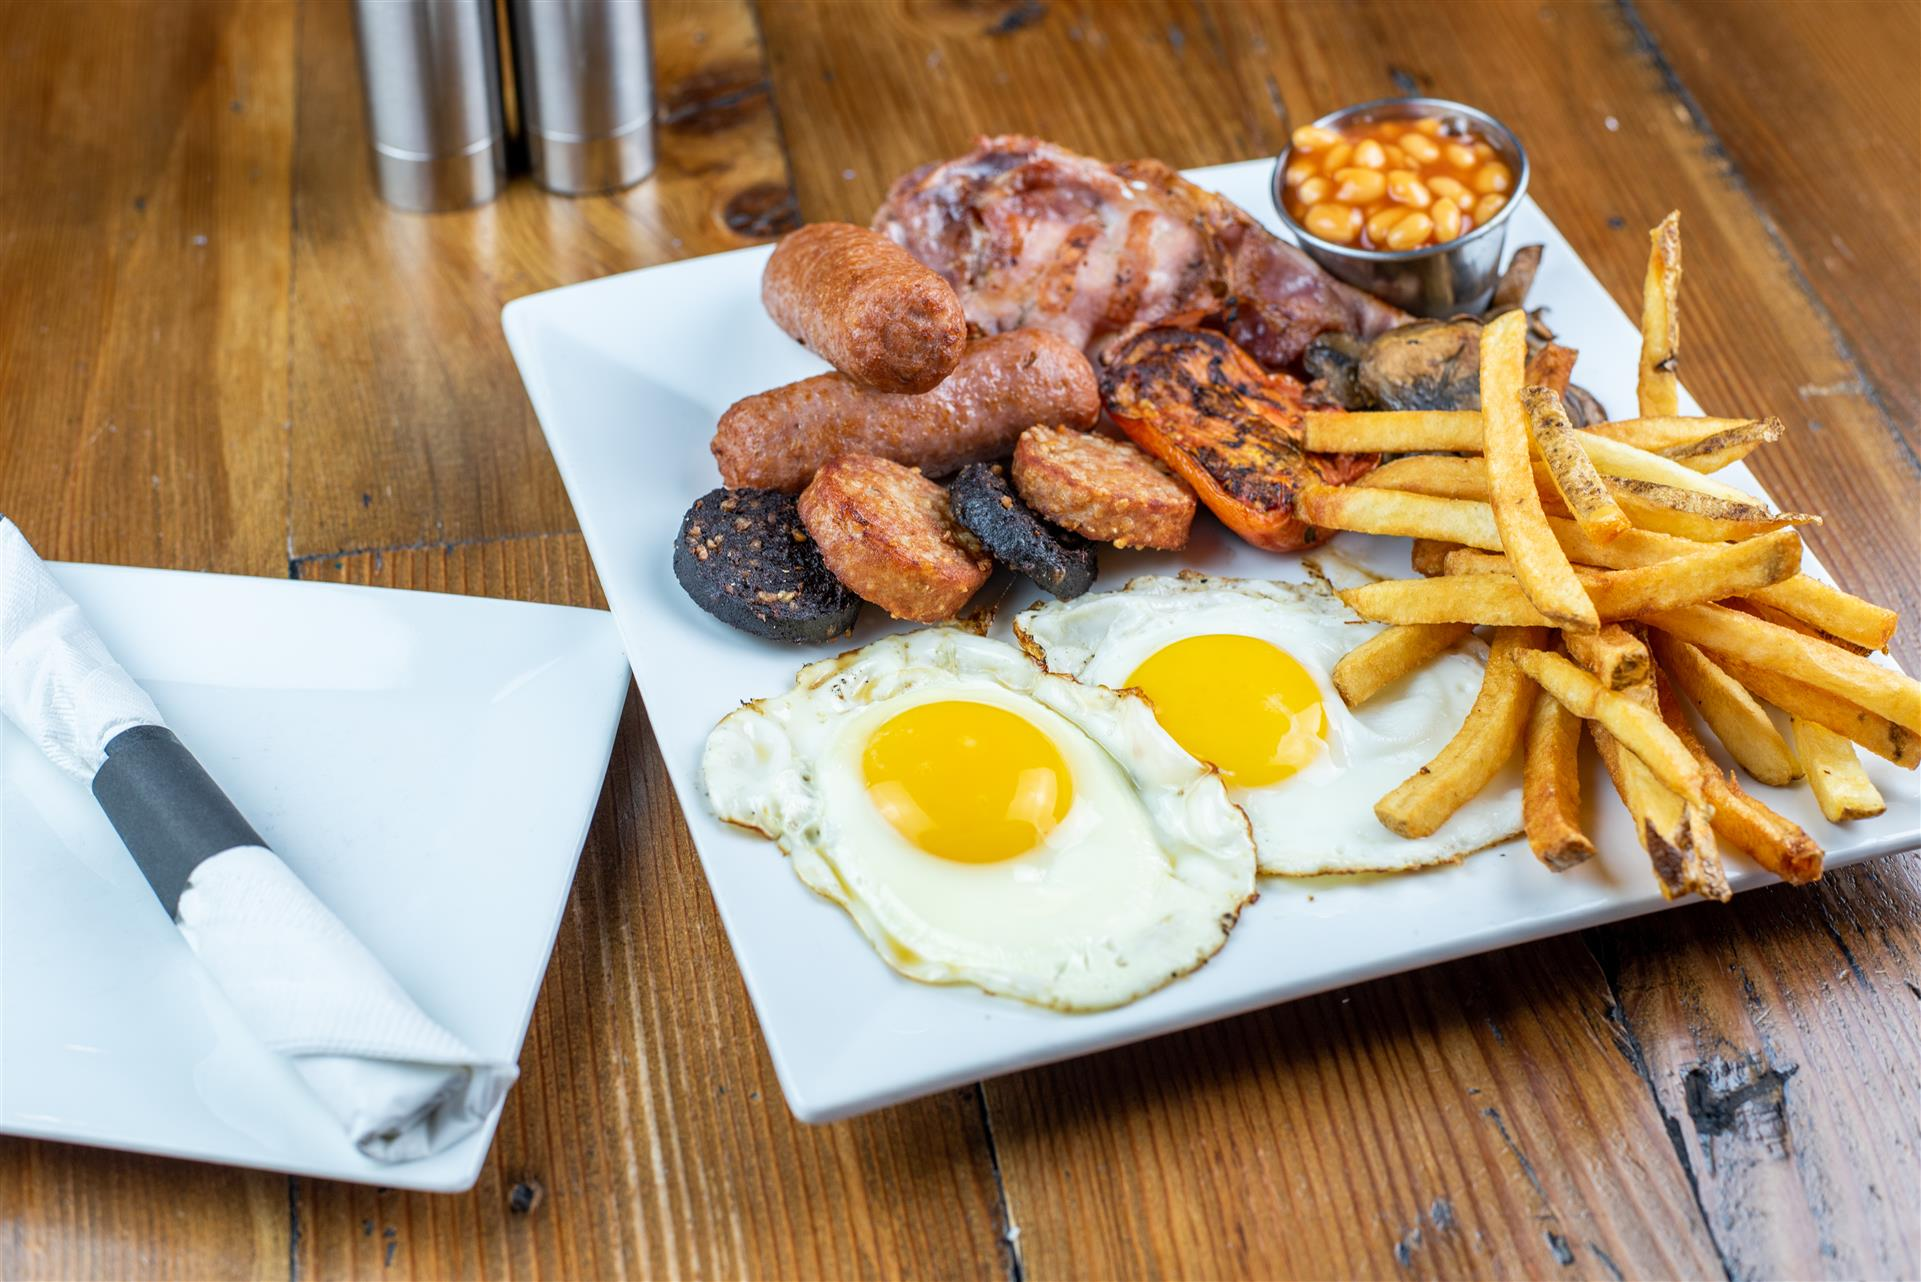 A plate with two eggs. sausage, baked beans and french fries